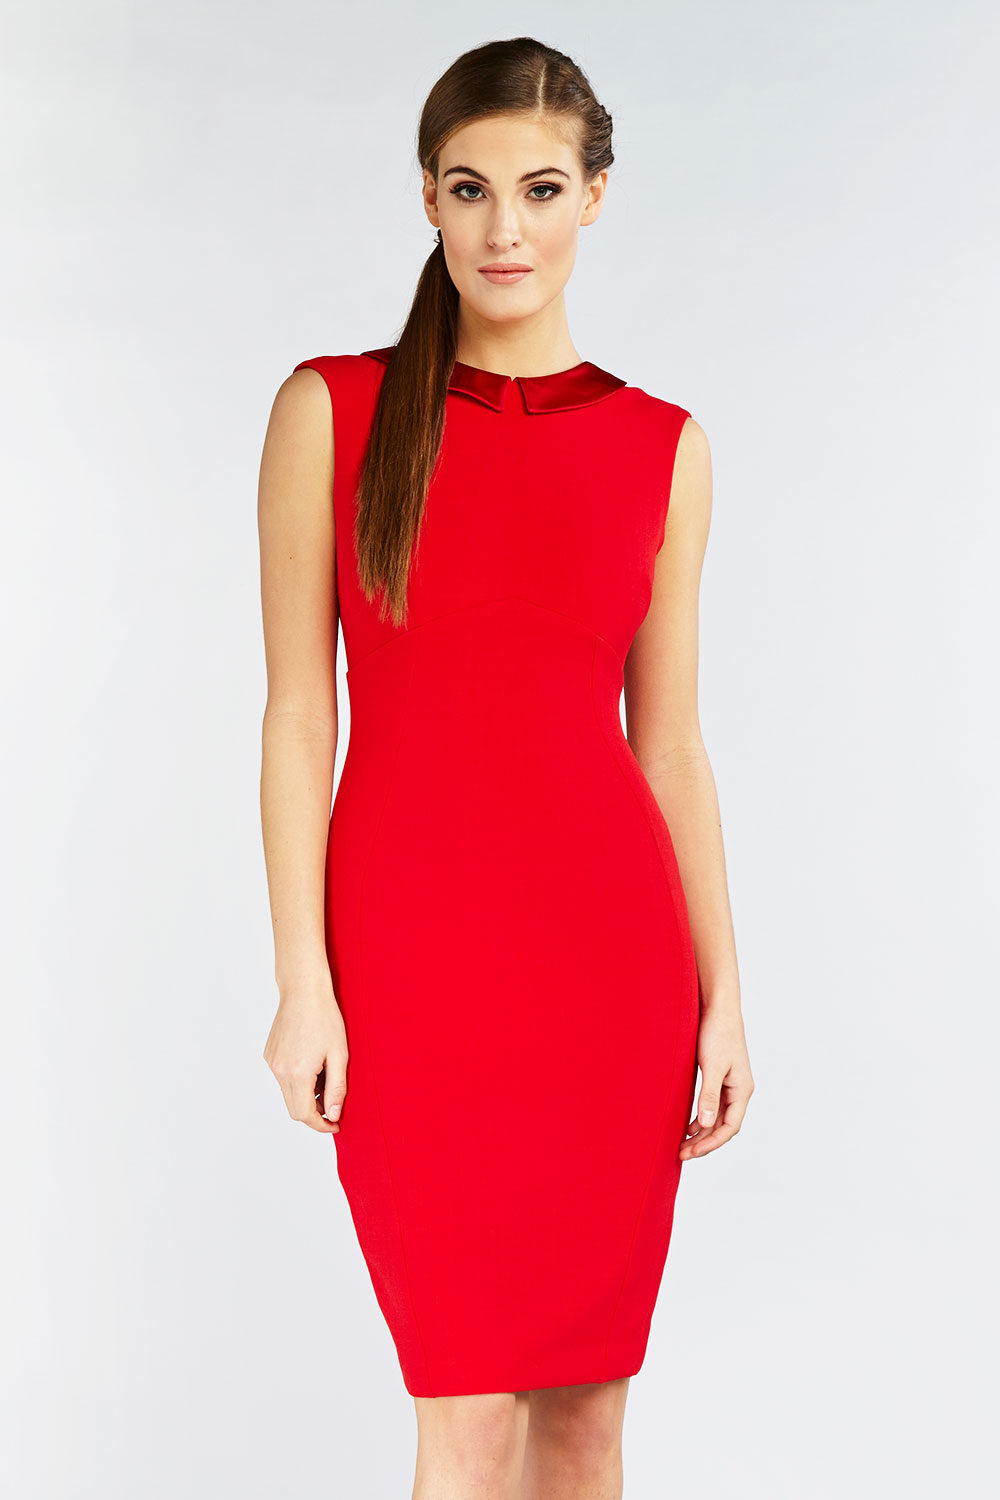 Hybrid Fashion Abigail 1097 Low Back Pencil Dress